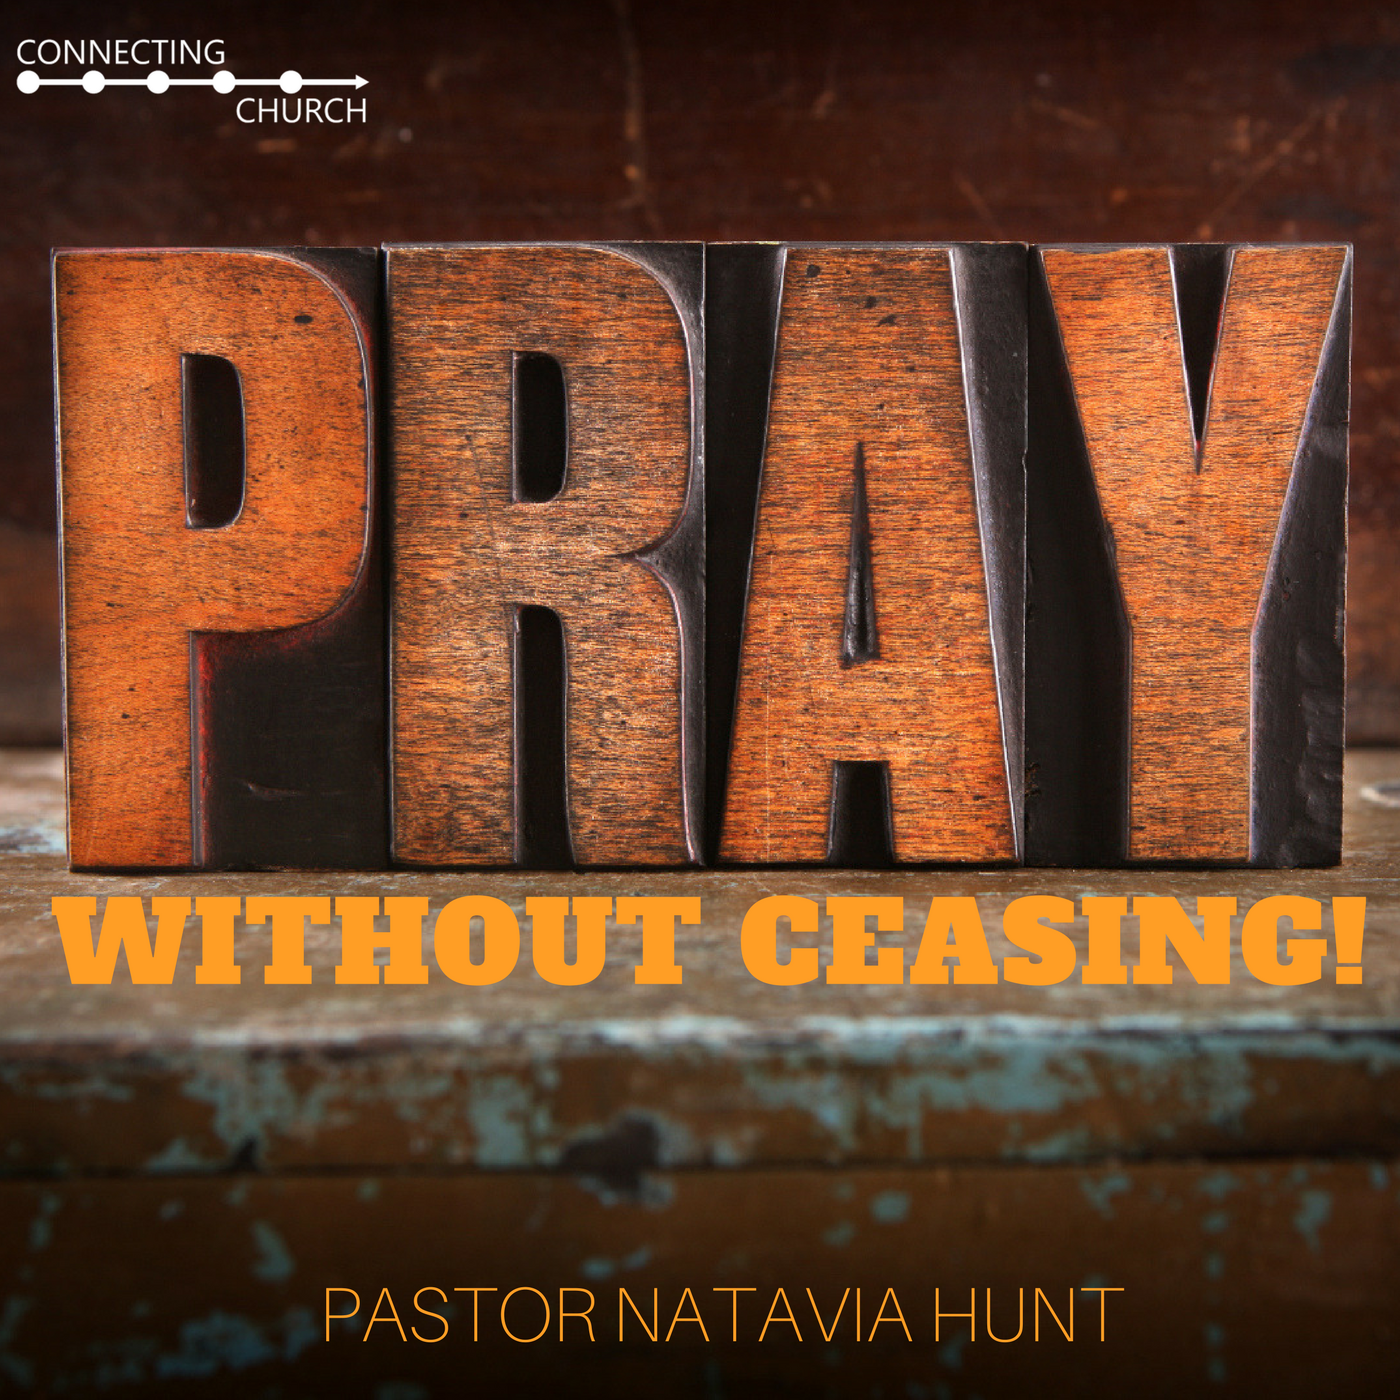 Pray Without Ceasing! (Single Message MP3)